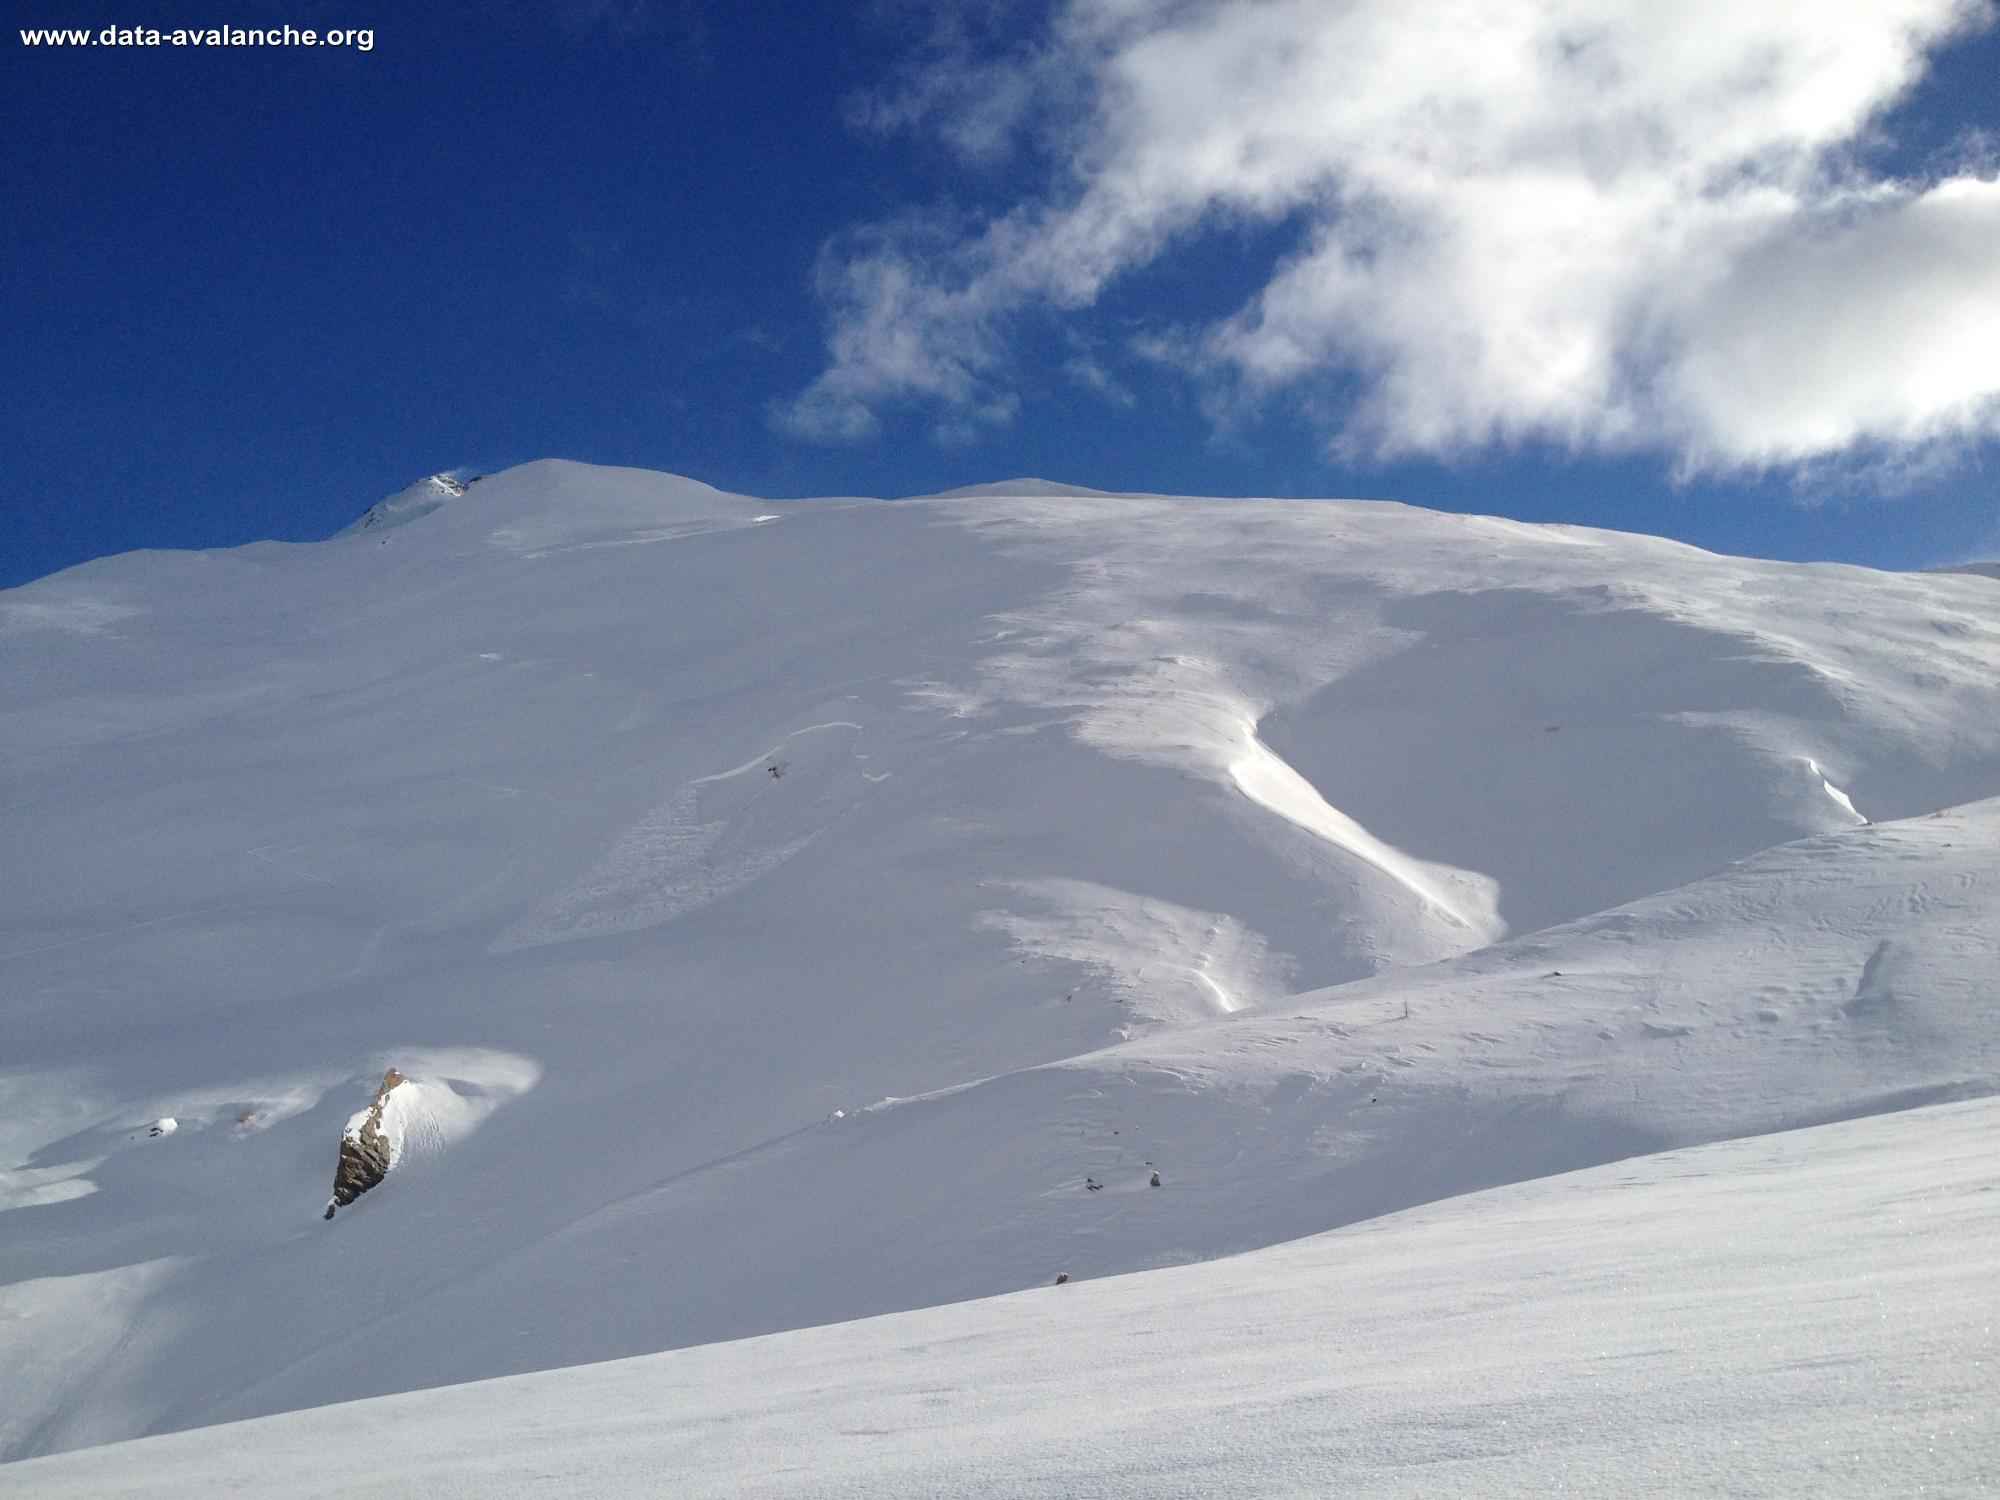 Avalanche Queyras - Photo 1 - © Matthieu Chaney